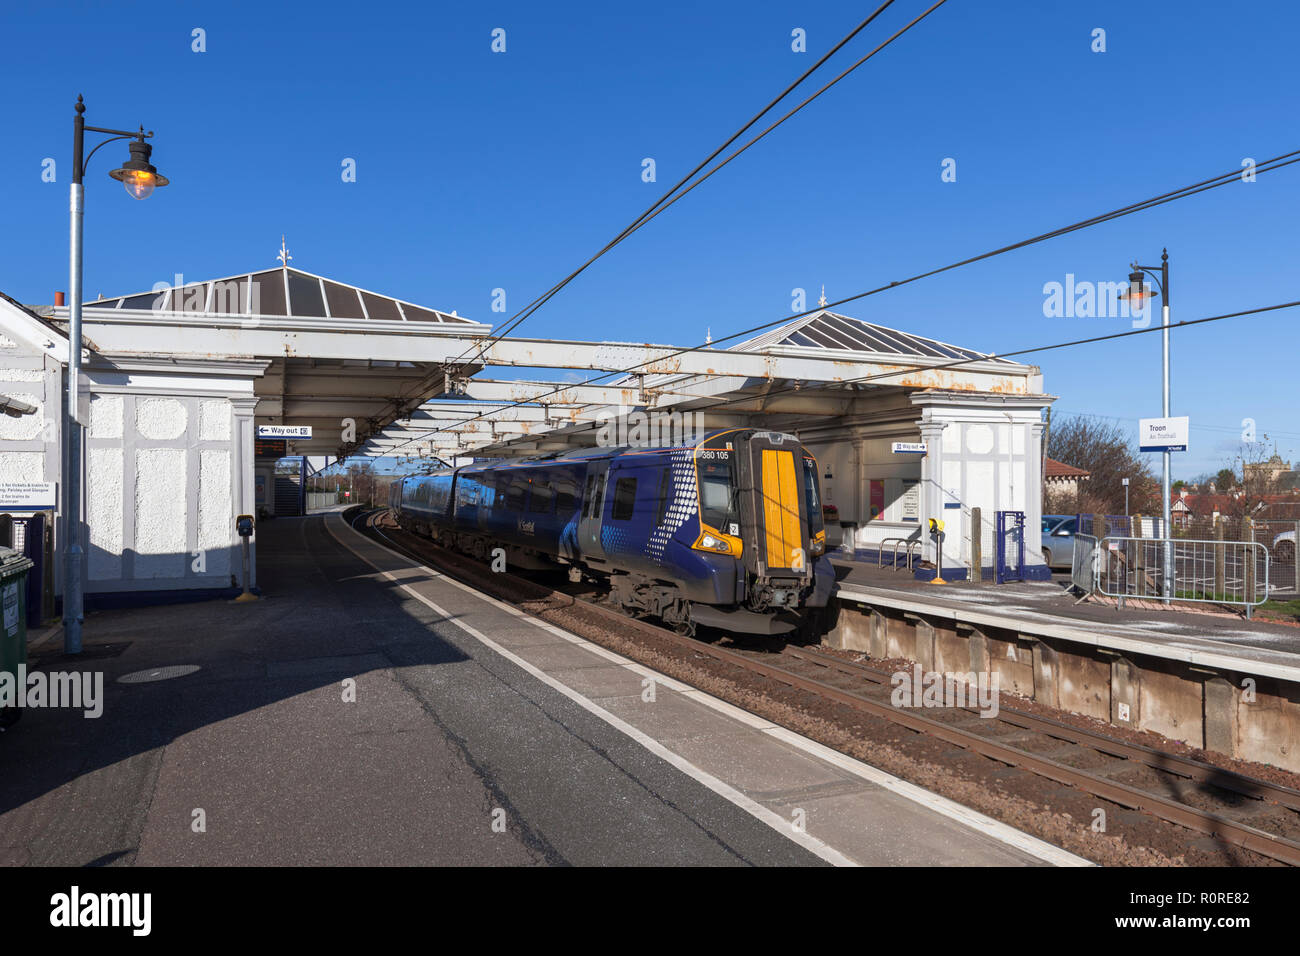 A Scotrail class 380 electric train at Troon railway station on the Ayrshire coast railway line - Stock Image